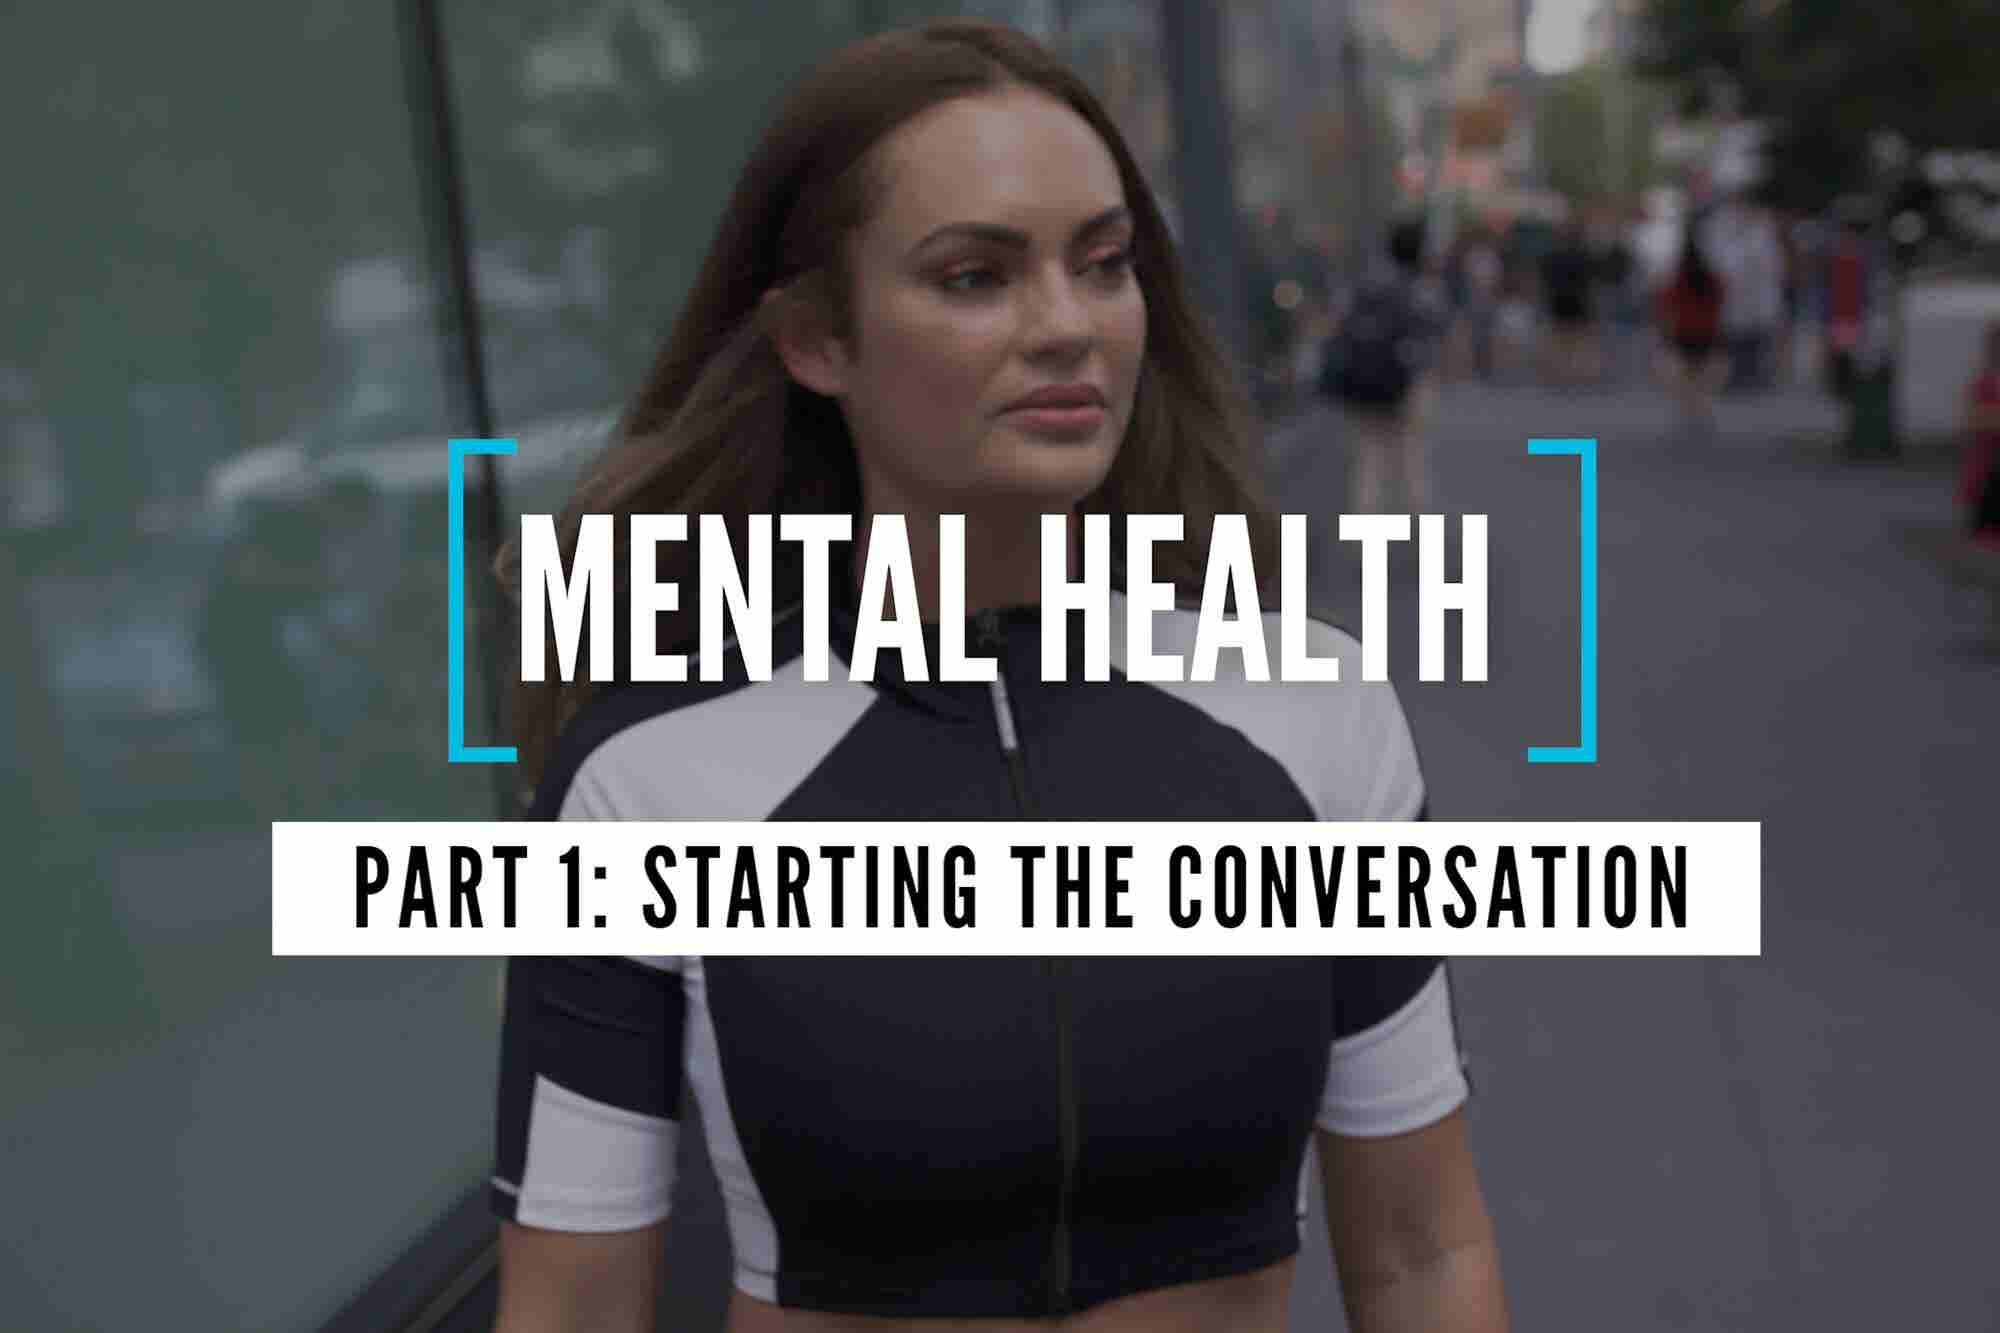 Watch 3 Entrepreneurs Talk About Their Mental Health Journey -- and Their Advice for Other Founders (Video)